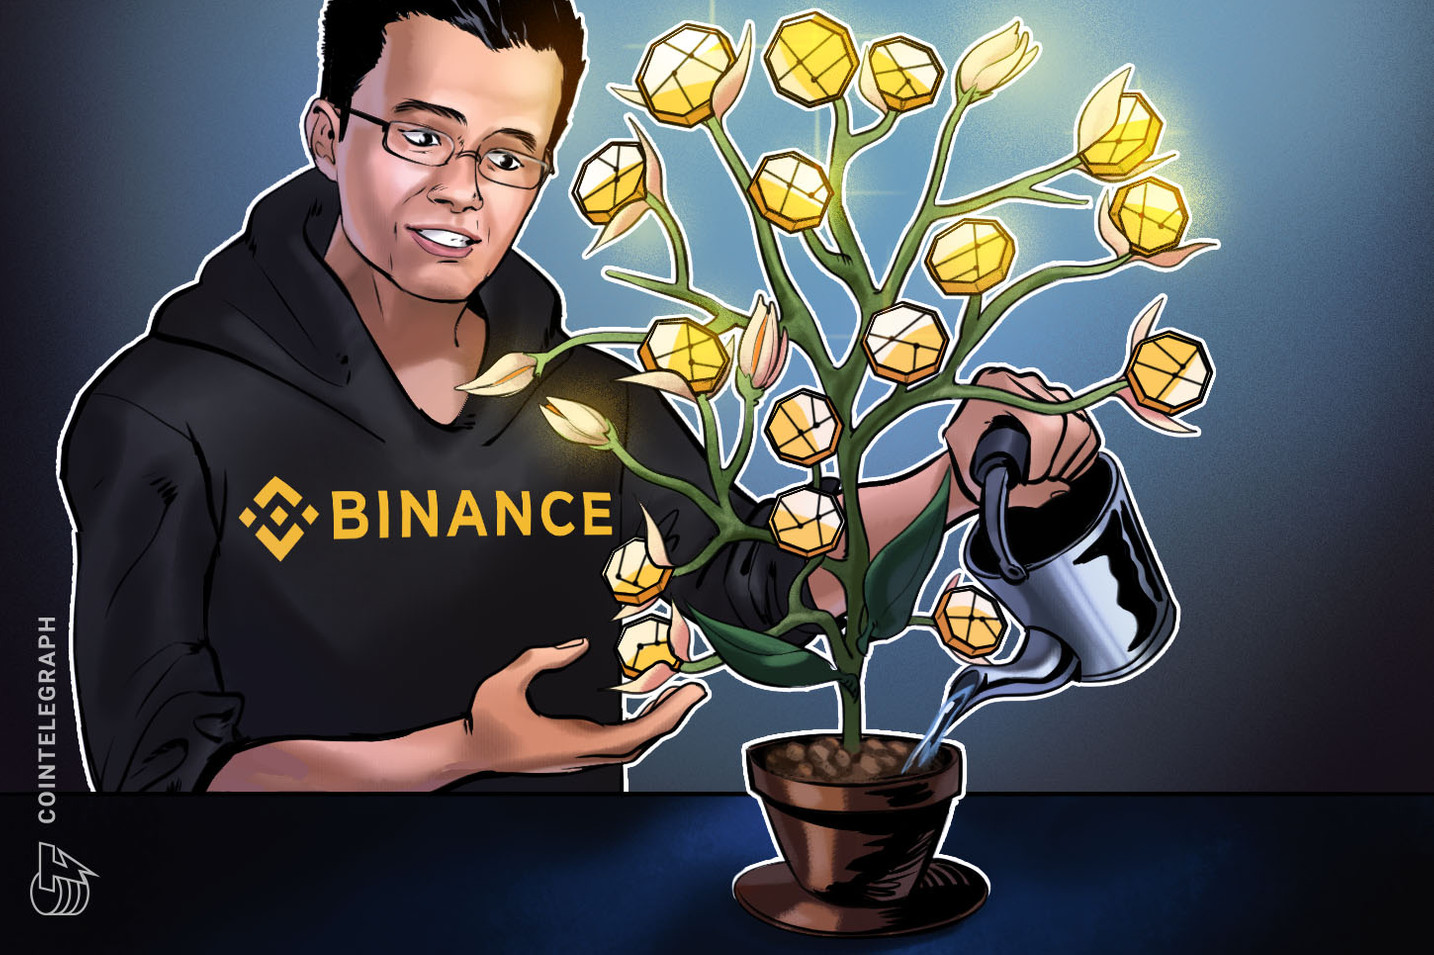 Binance.US apre i depositi per ADA, BAT, ETC, XLM, ZRX